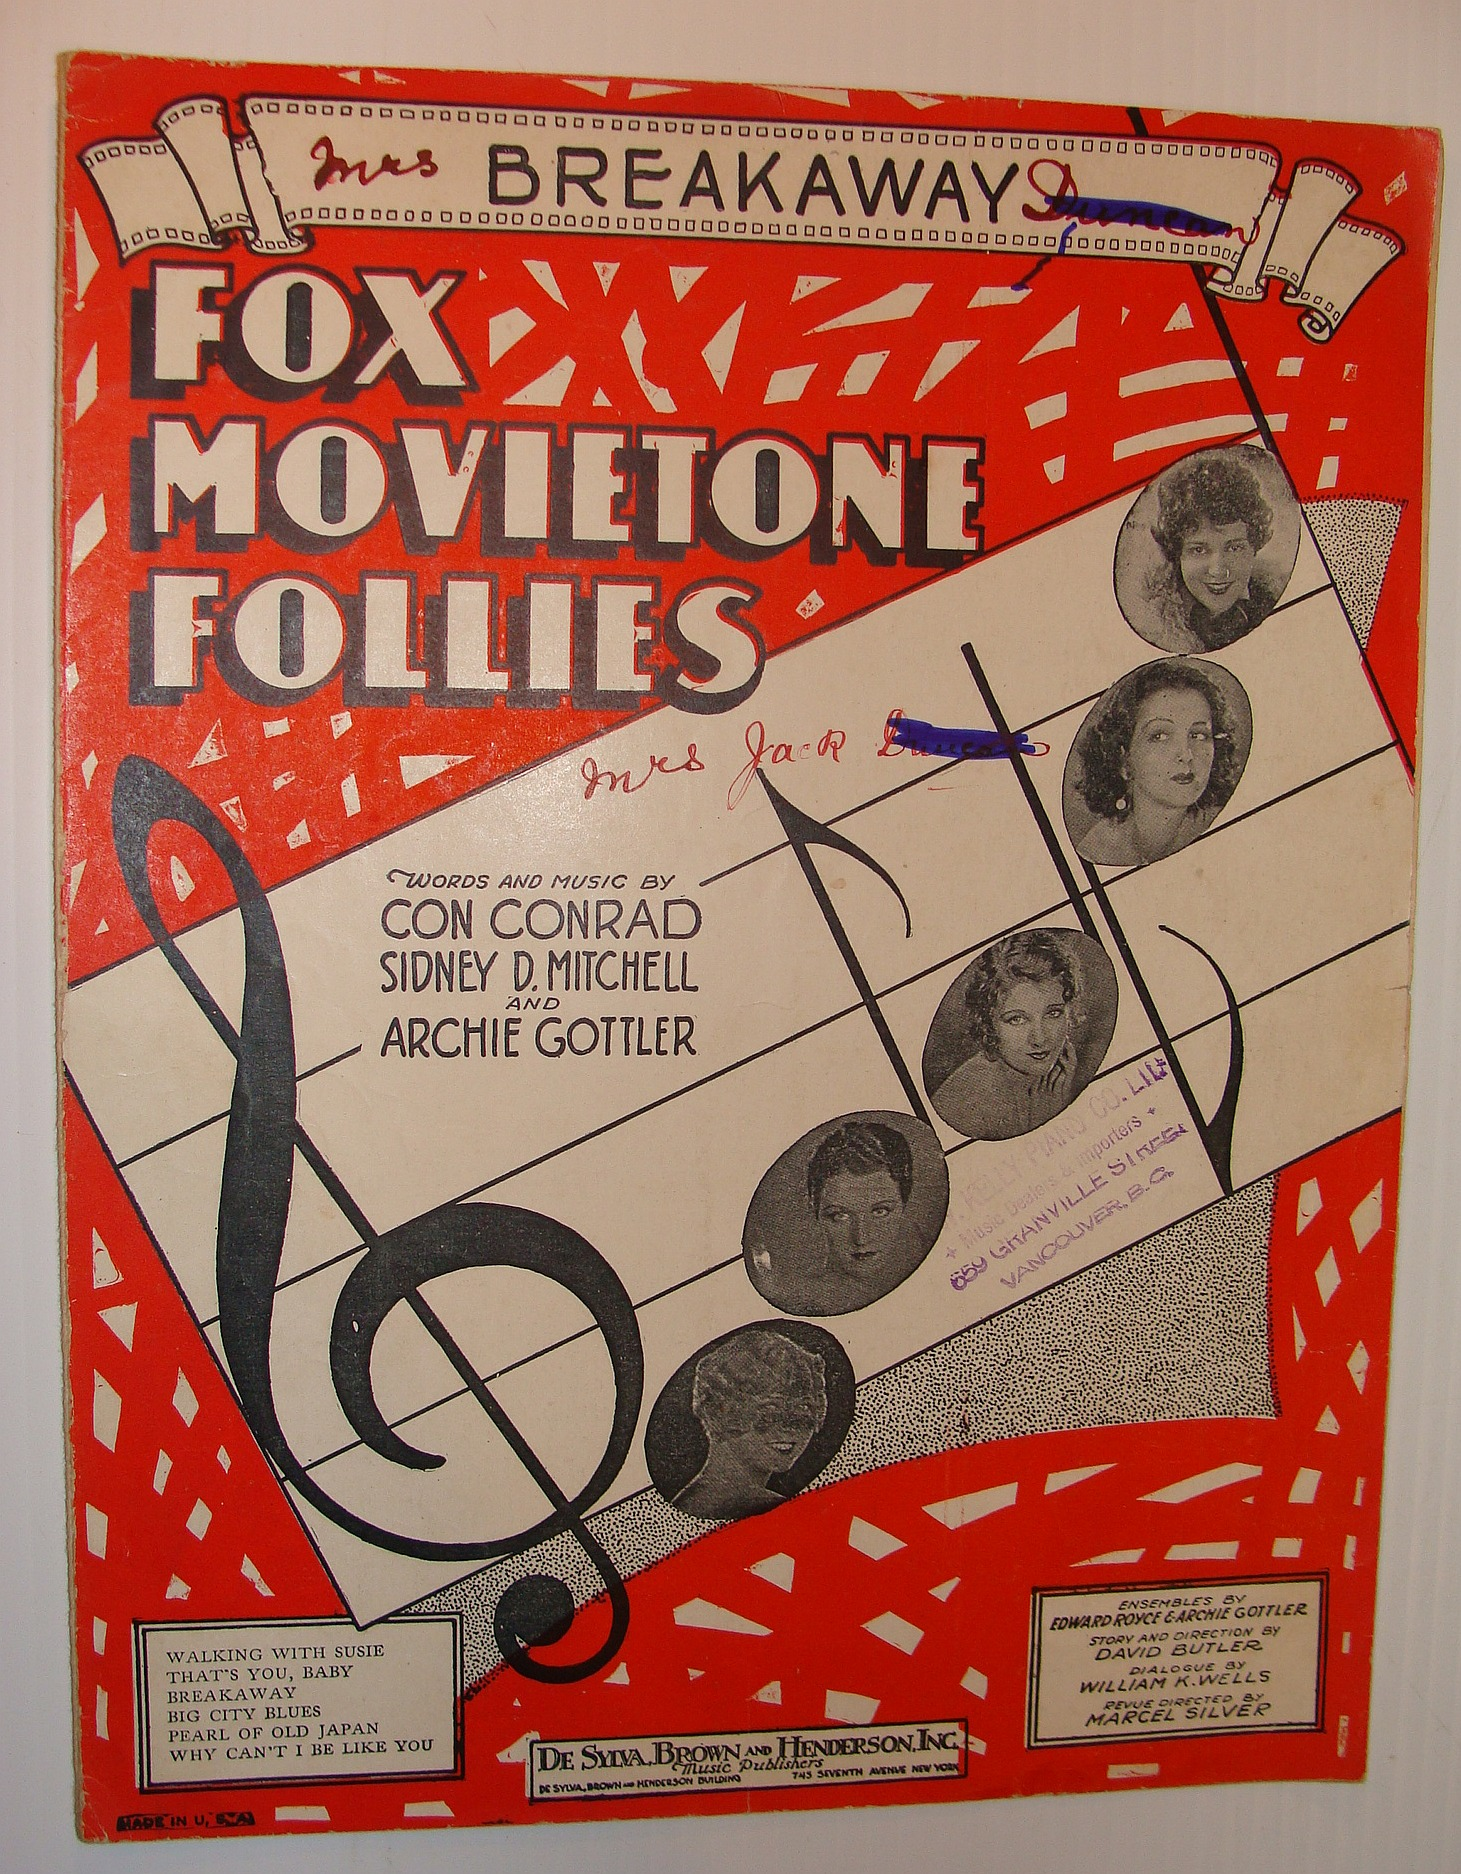 Image for Breakaway - Sheet Music for the Song from Fox Movietown Follies of 1929